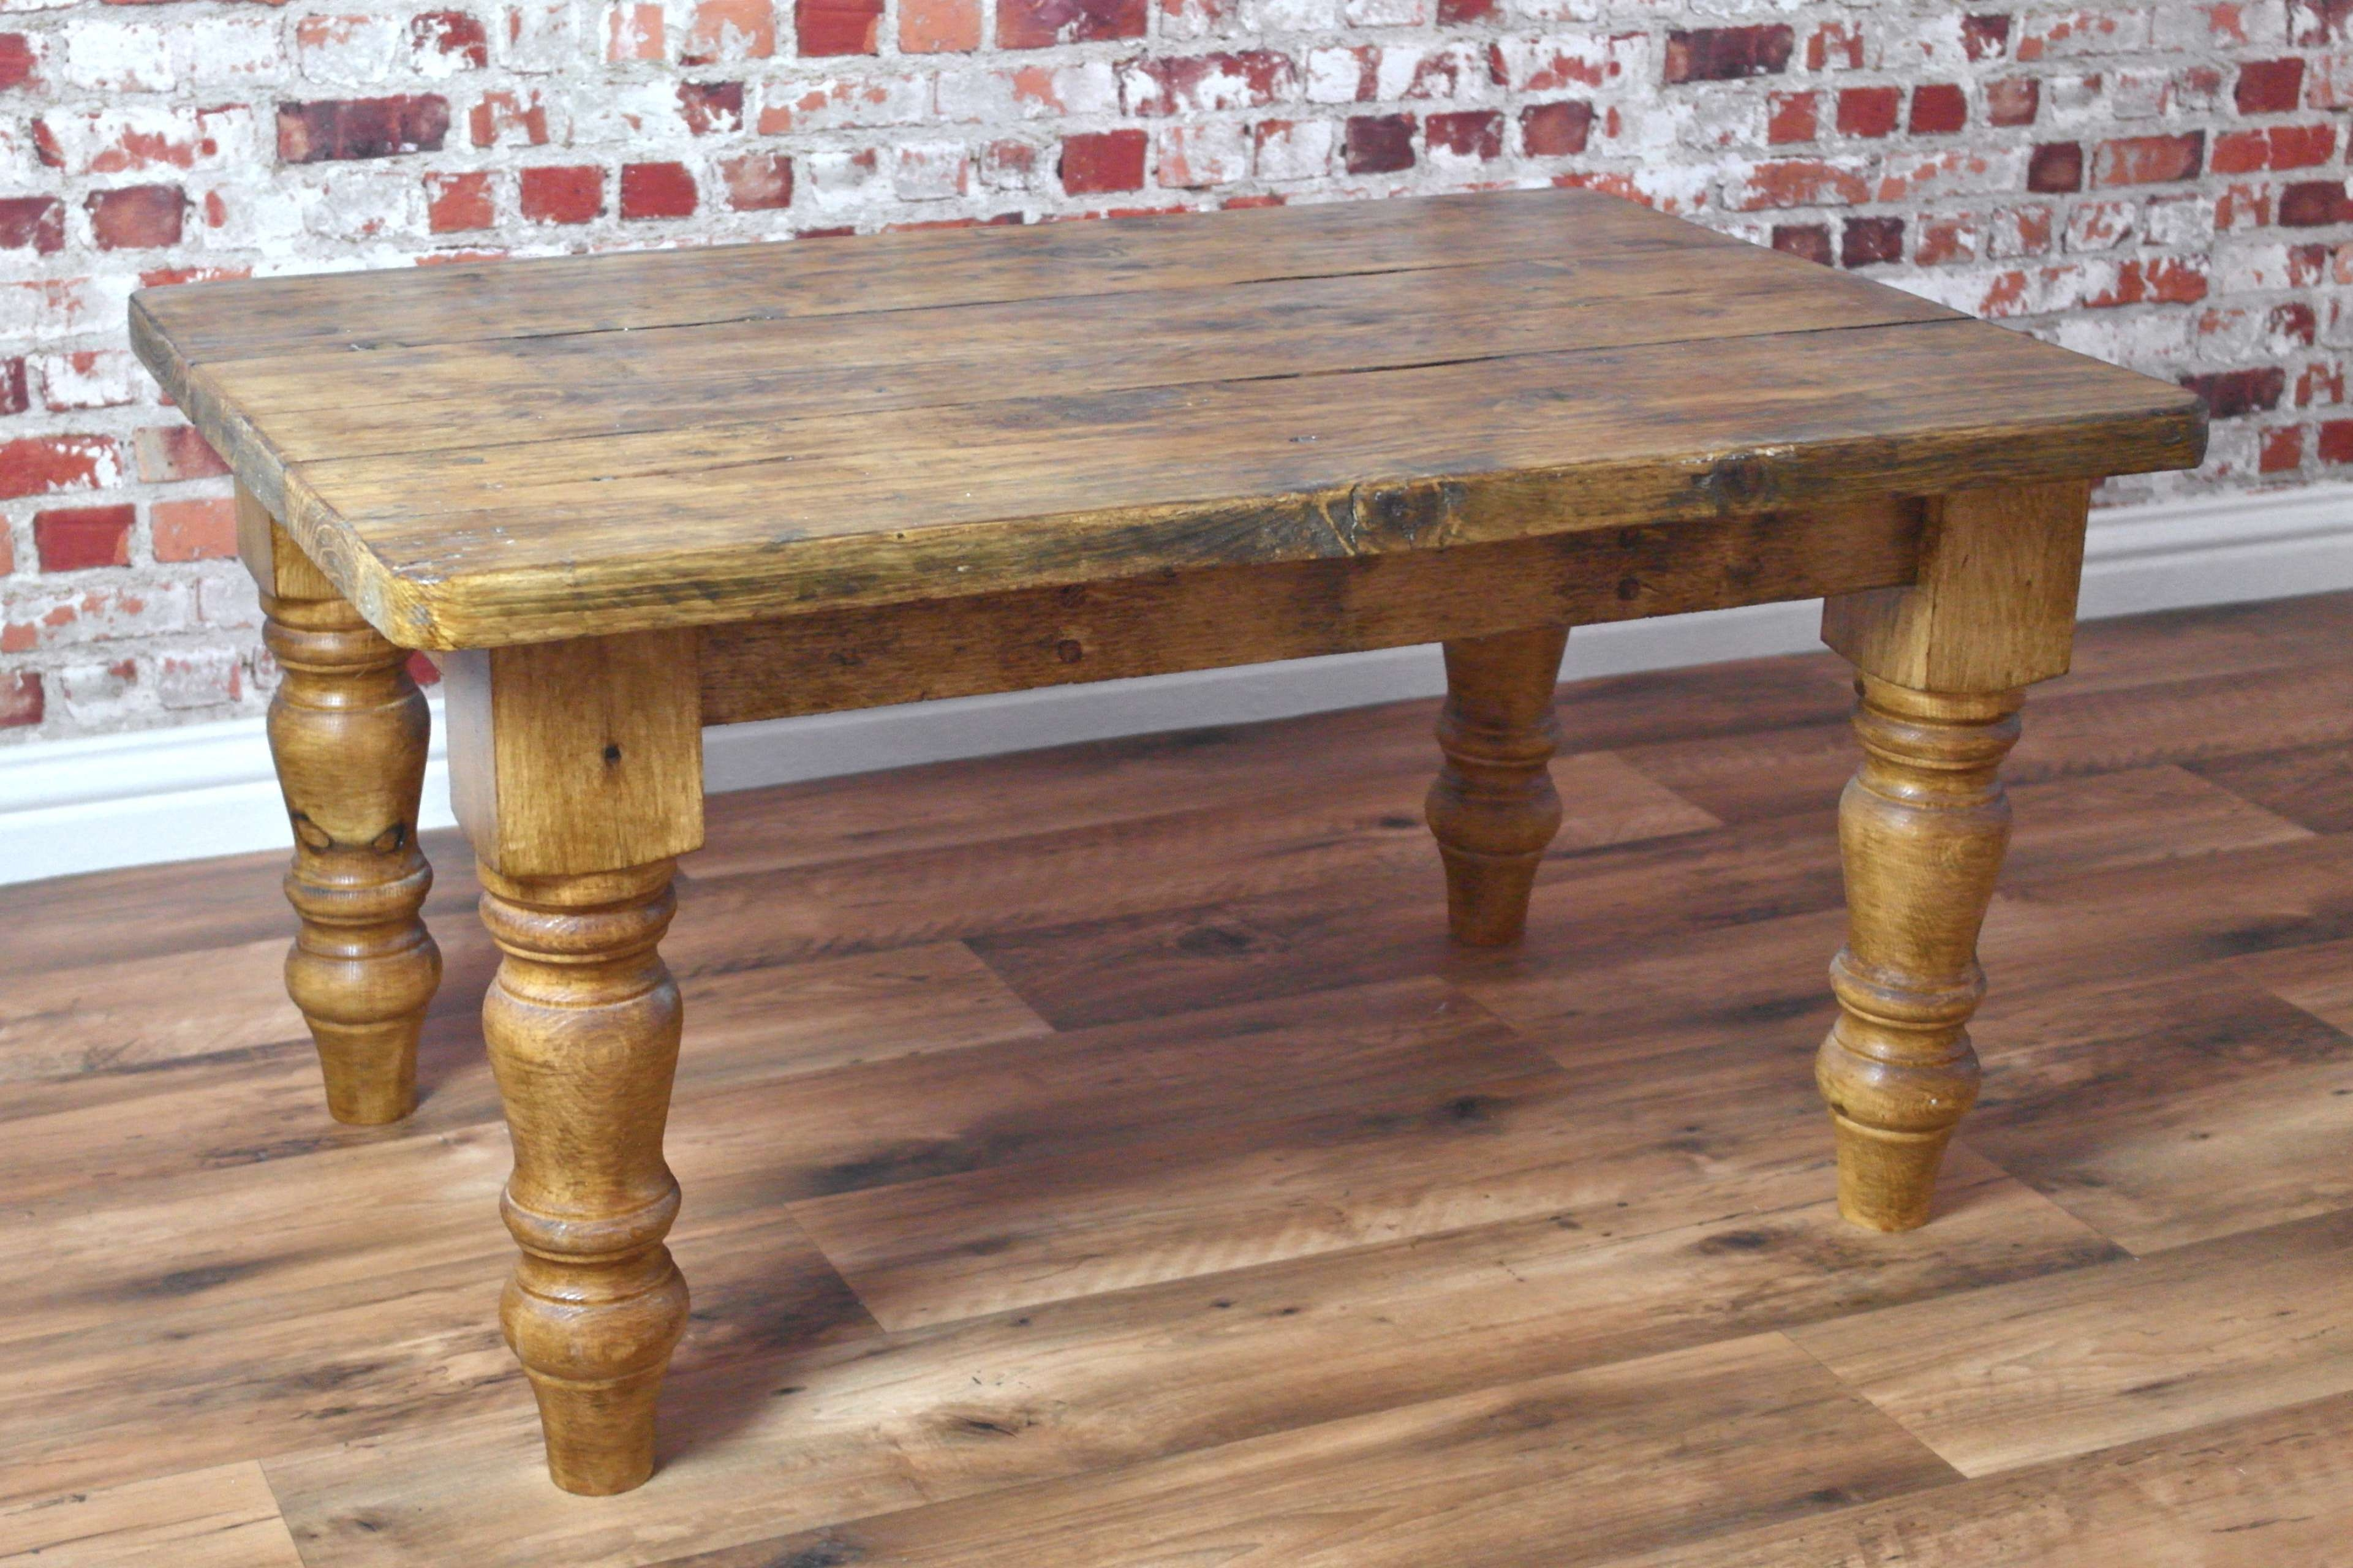 Newest Antique Rustic Coffee Tables With Regard To Rustic Coffee Table Made From Reclaimed Pine Farmhouse Style (View 20 of 20)